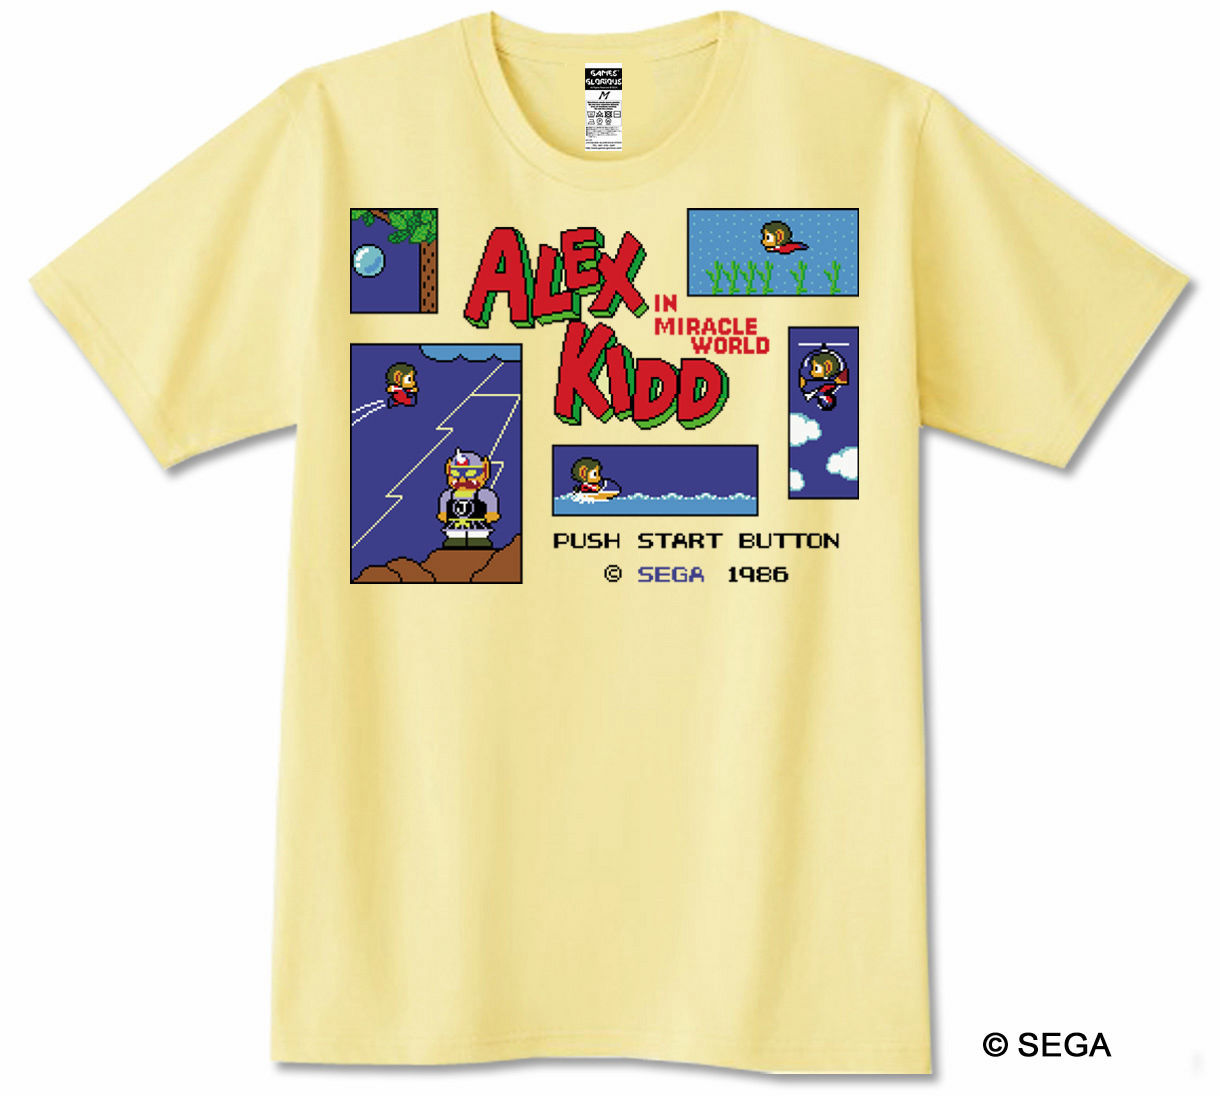 ALEX KIDD in Miracle World Tシャツ / GAMES GLORIOUS